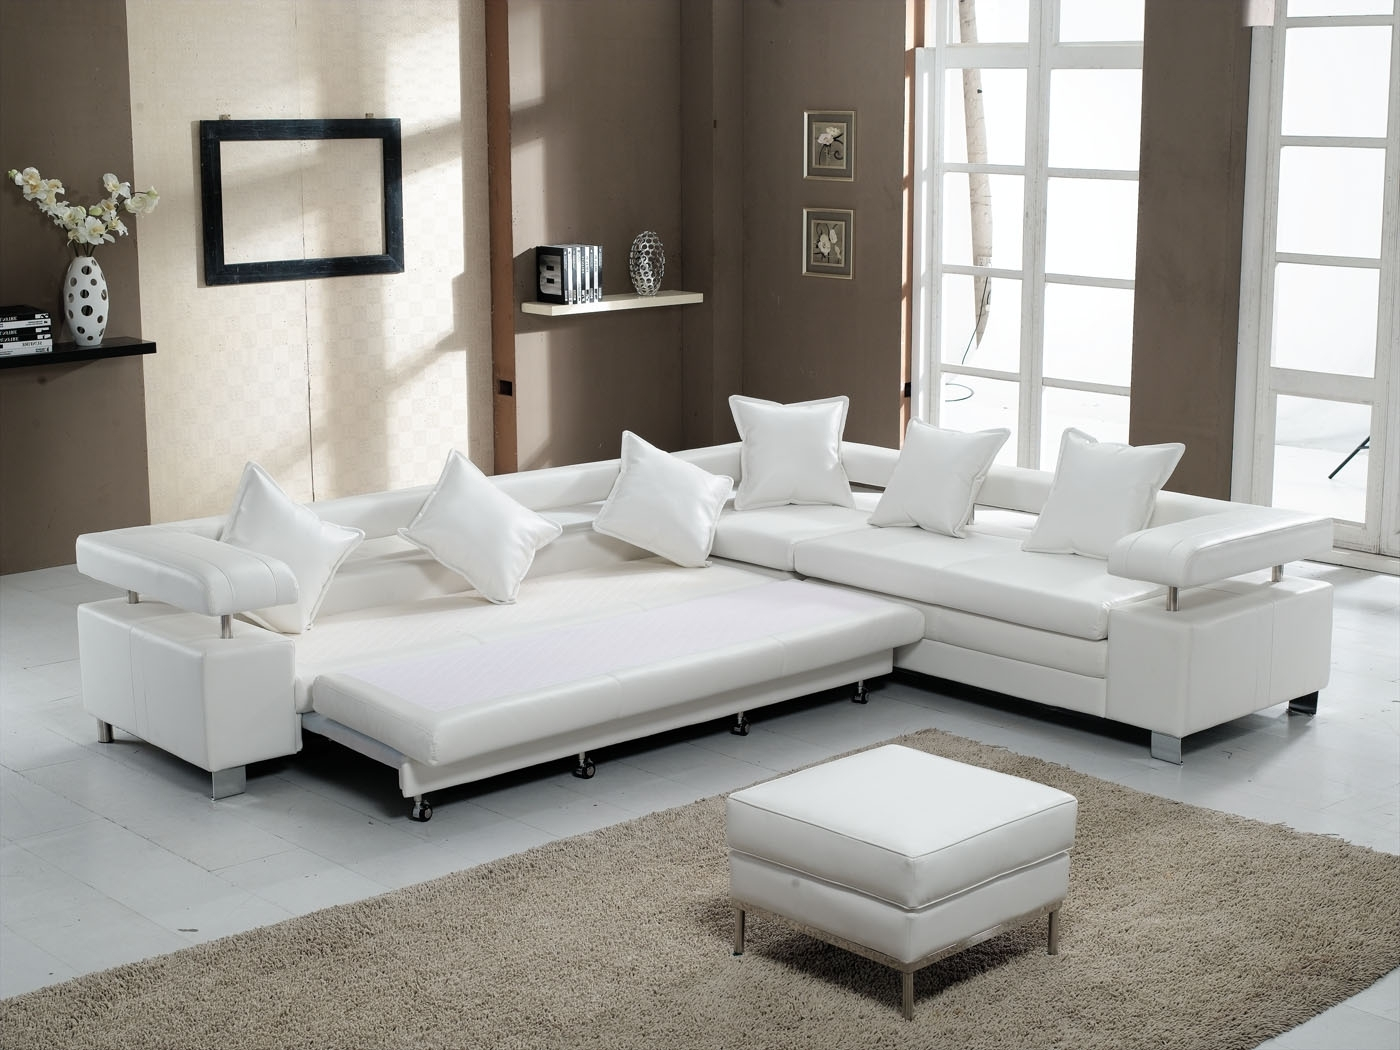 Sectional Sleeper Sofas With Ottoman Throughout Most Up To Date 3 Piece White Leather Sectional Sofa With Stainless Steel Legs And (View 14 of 15)